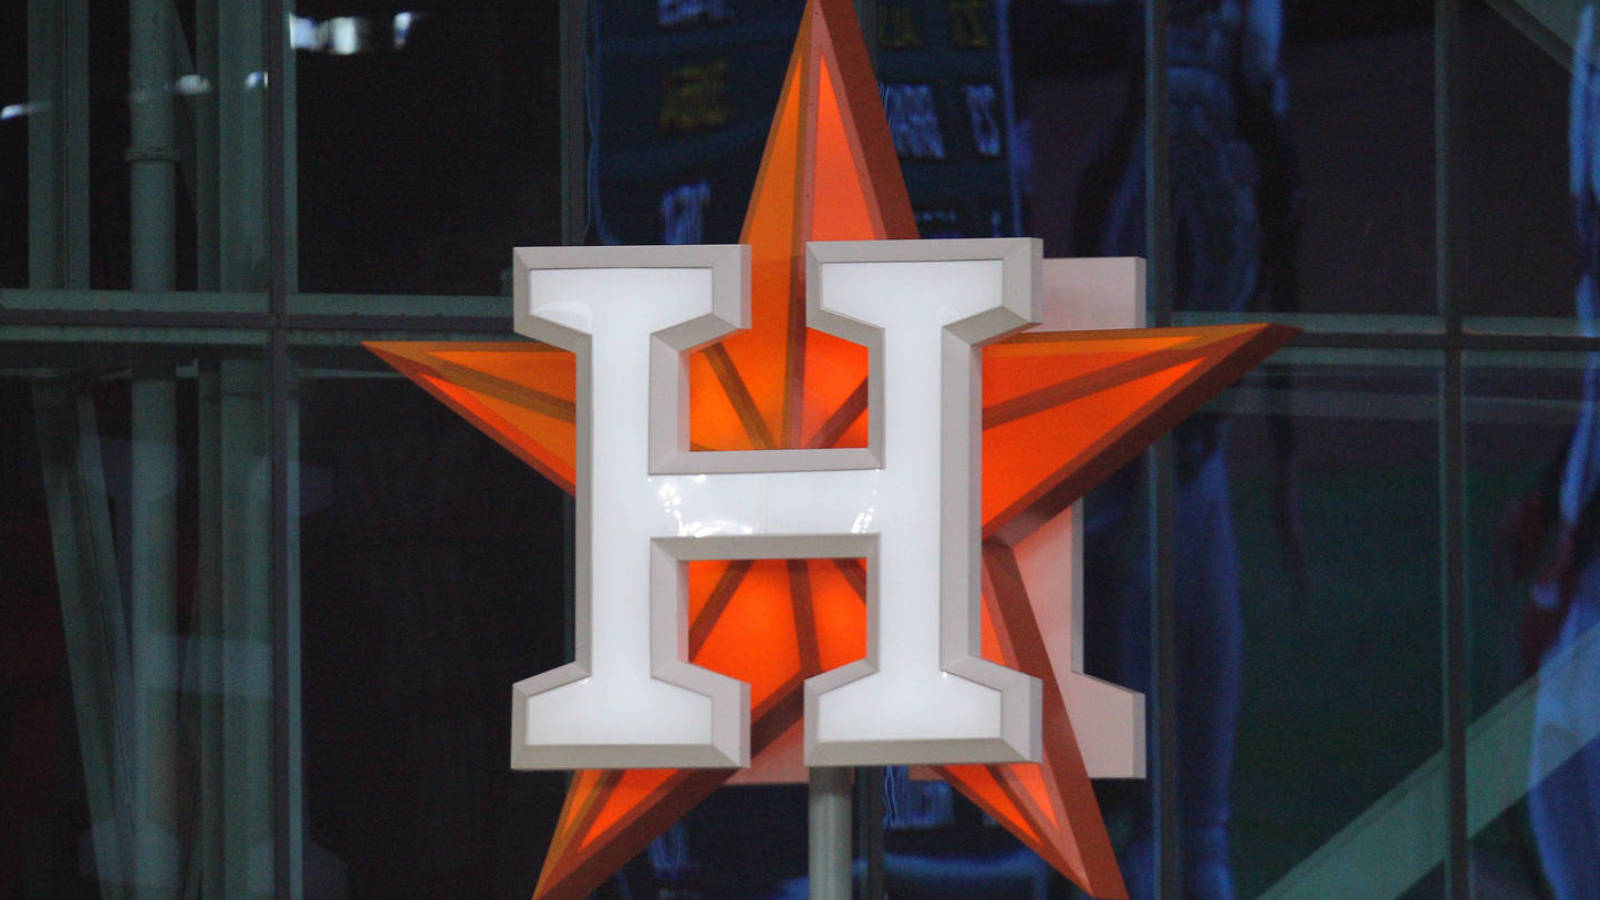 Astros trolled with 'Houston Asterisks' banner in Oakland